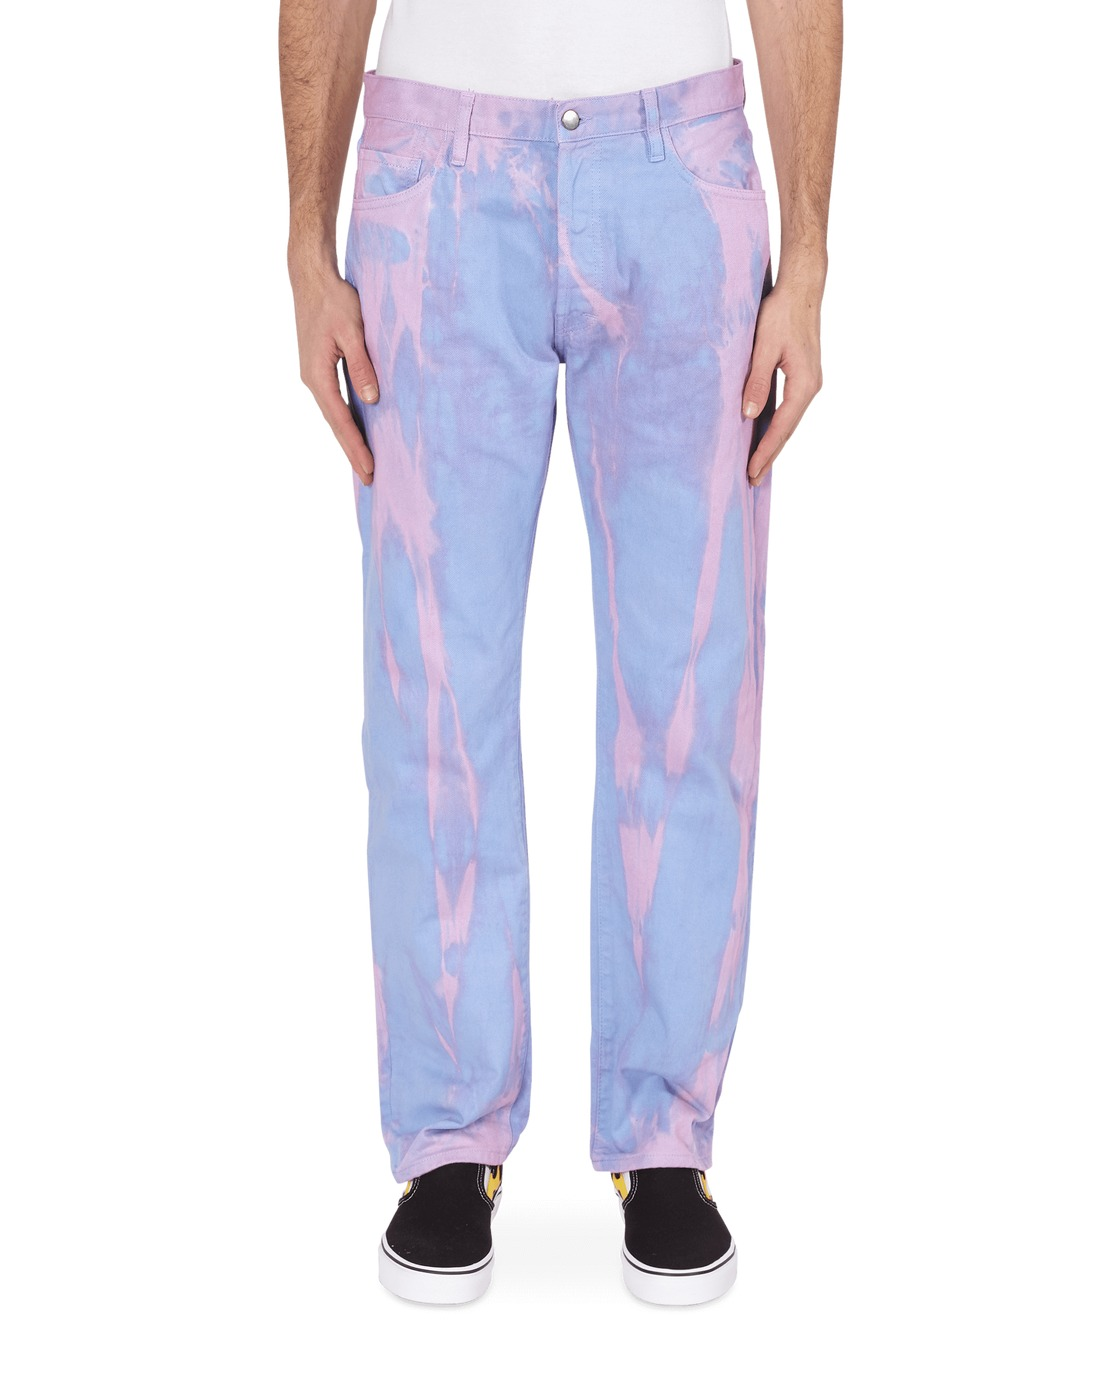 Aries Mlp Dyed Lilly Jeans Lilac